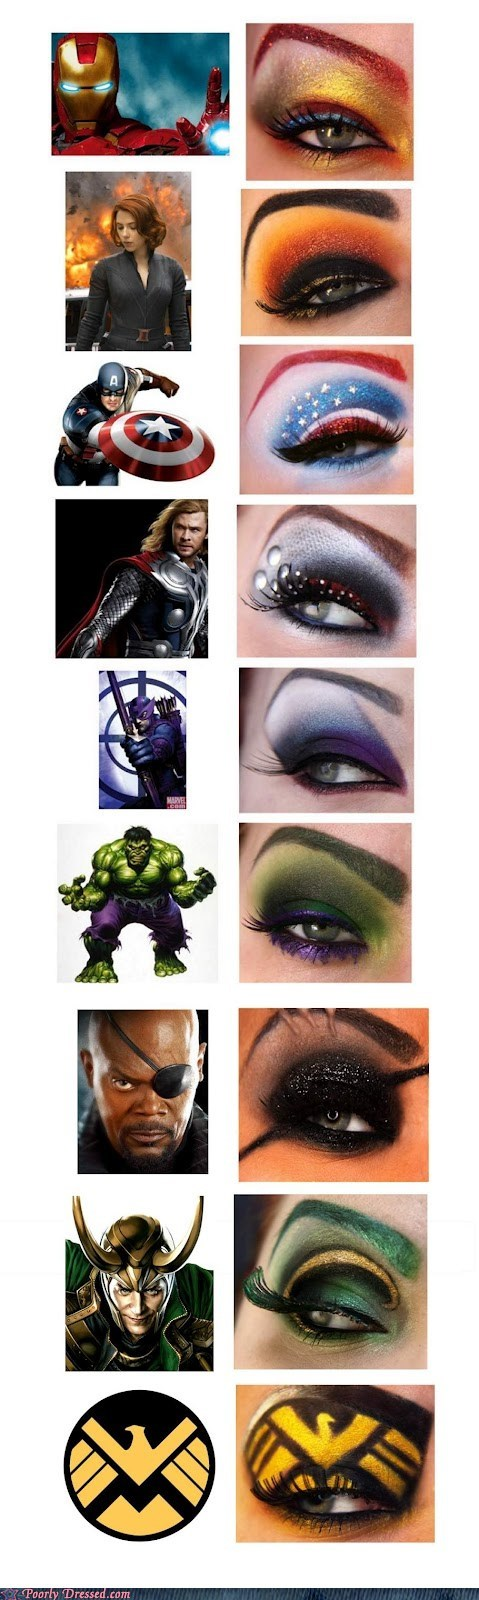 avengers g rated Hall of Fame makeup nerdgasm Poorly Dresssed super heroes